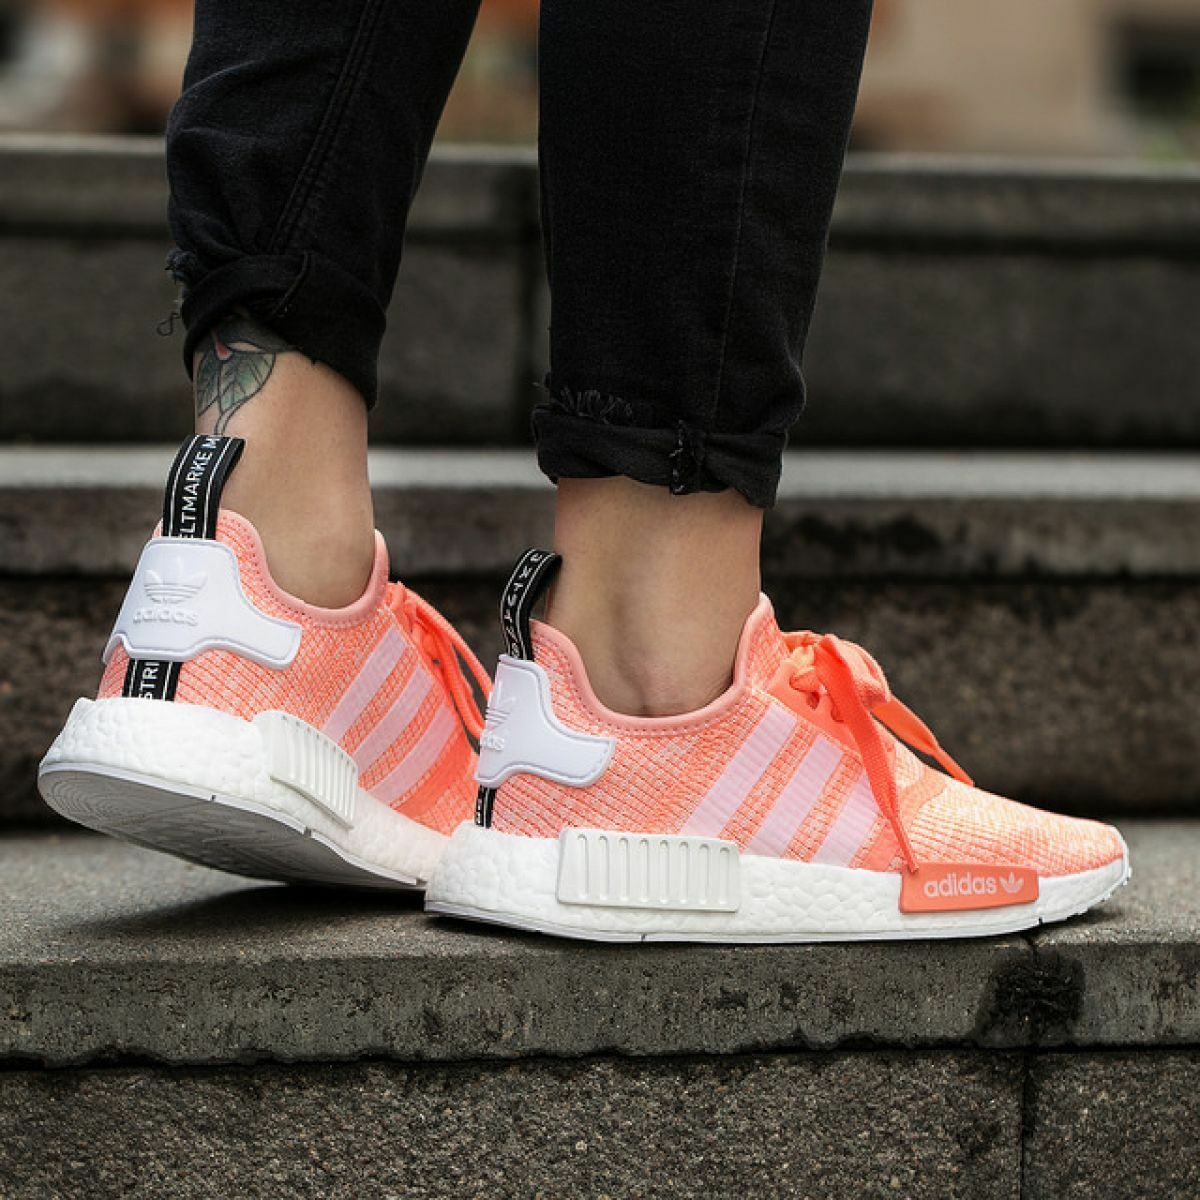 AUTHENTIC adidas NMD_R1 NMD_R1 NMD_R1 Runner Sun Glow White Peach Pink Coral BY3034 Women size bcfd27